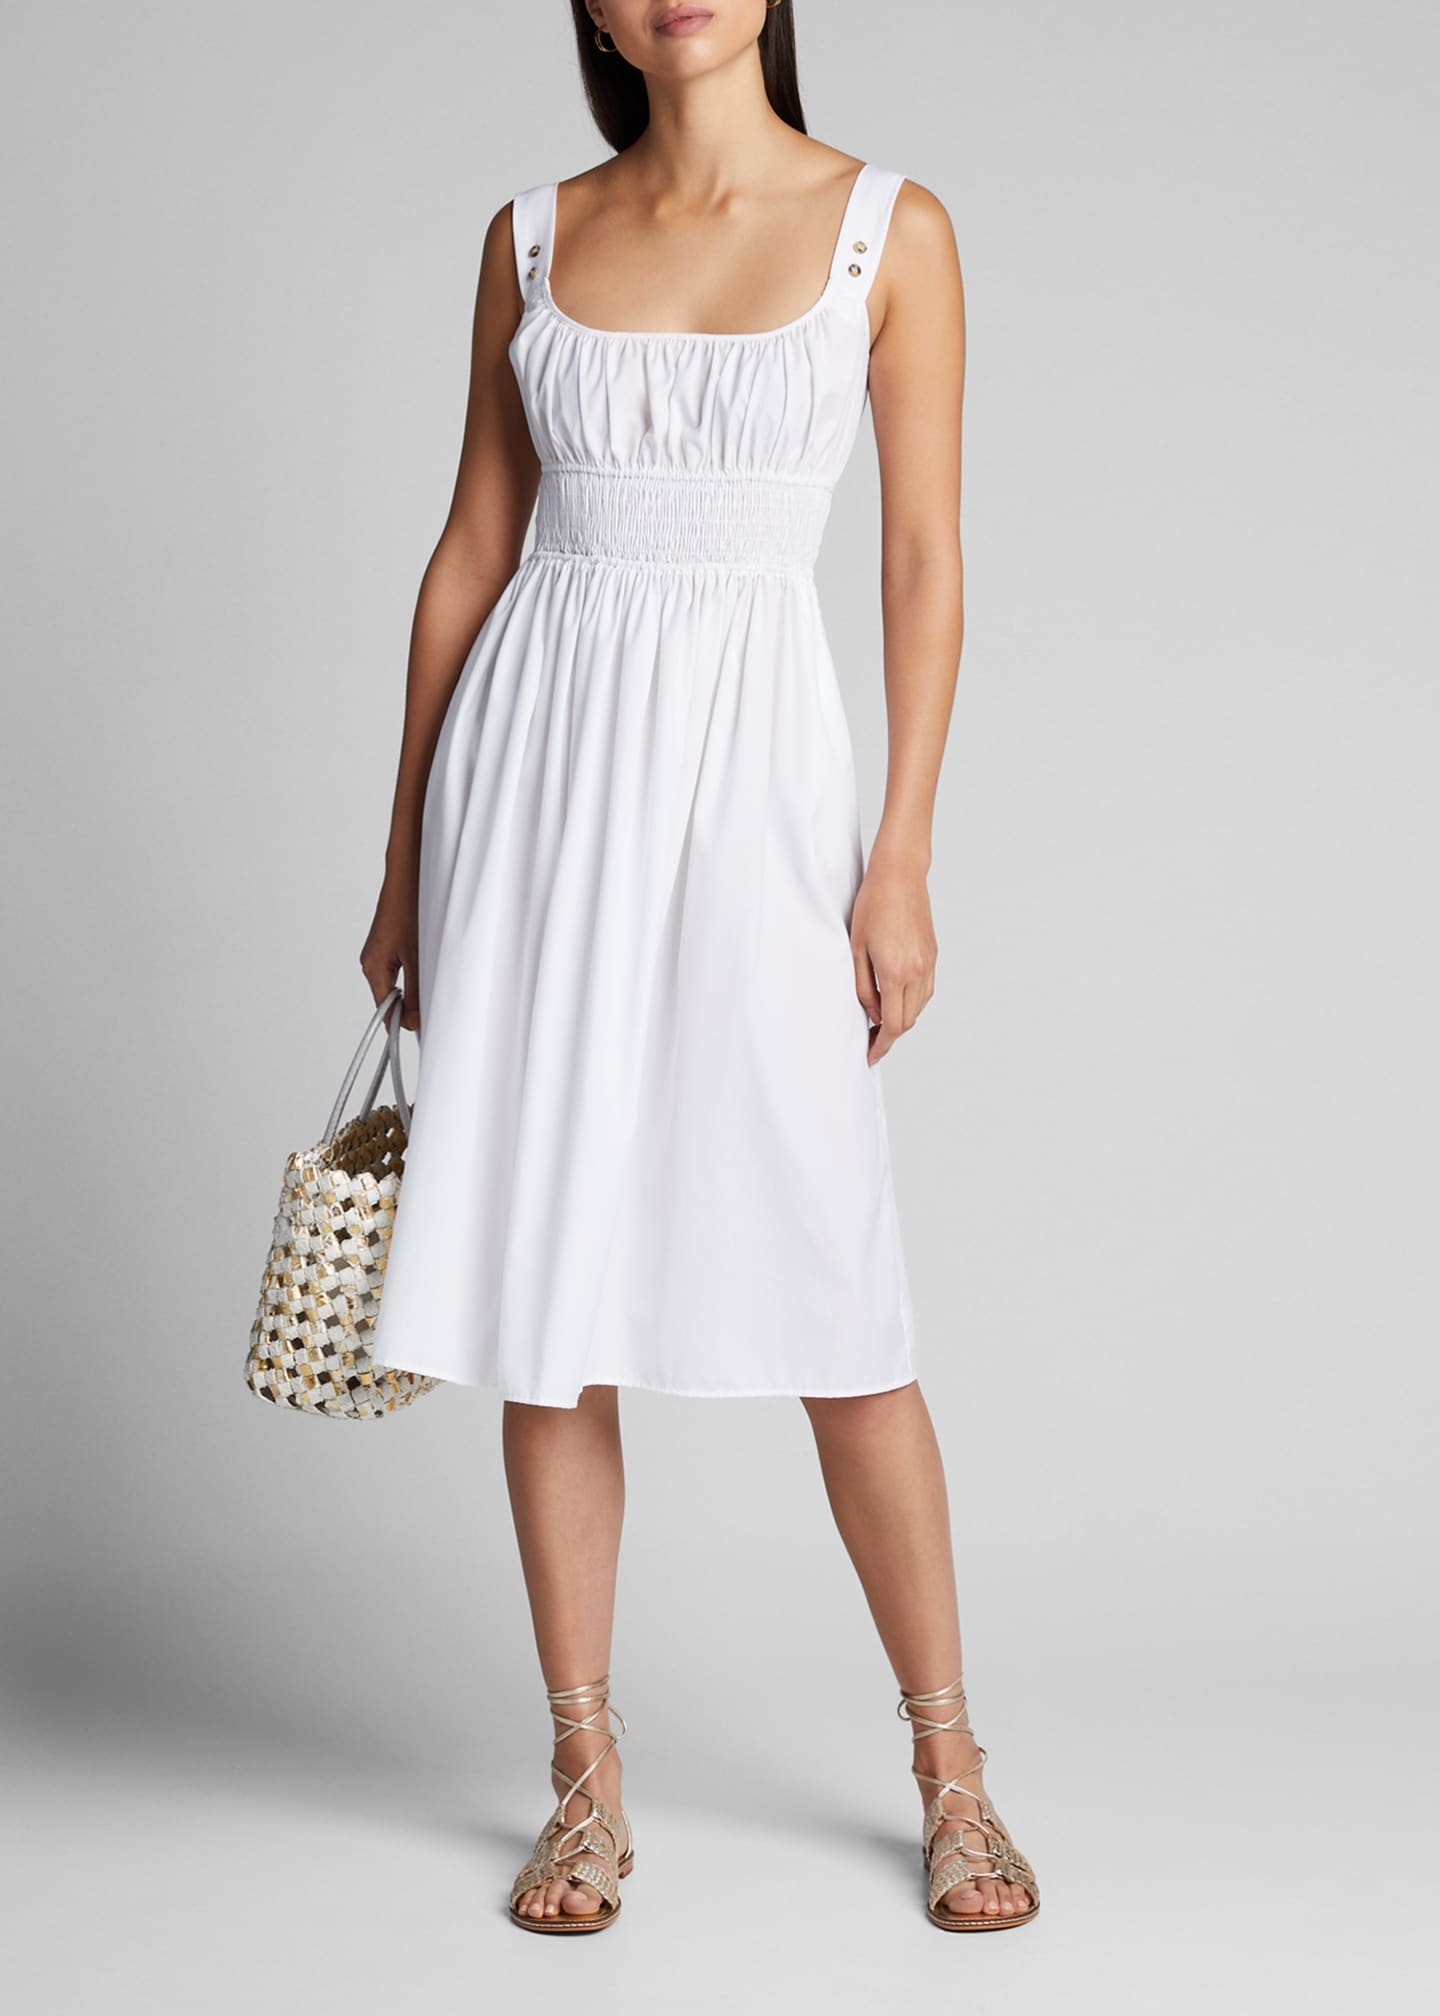 Ciao Lucia Lara Smocked Square-Neck Midi Dress